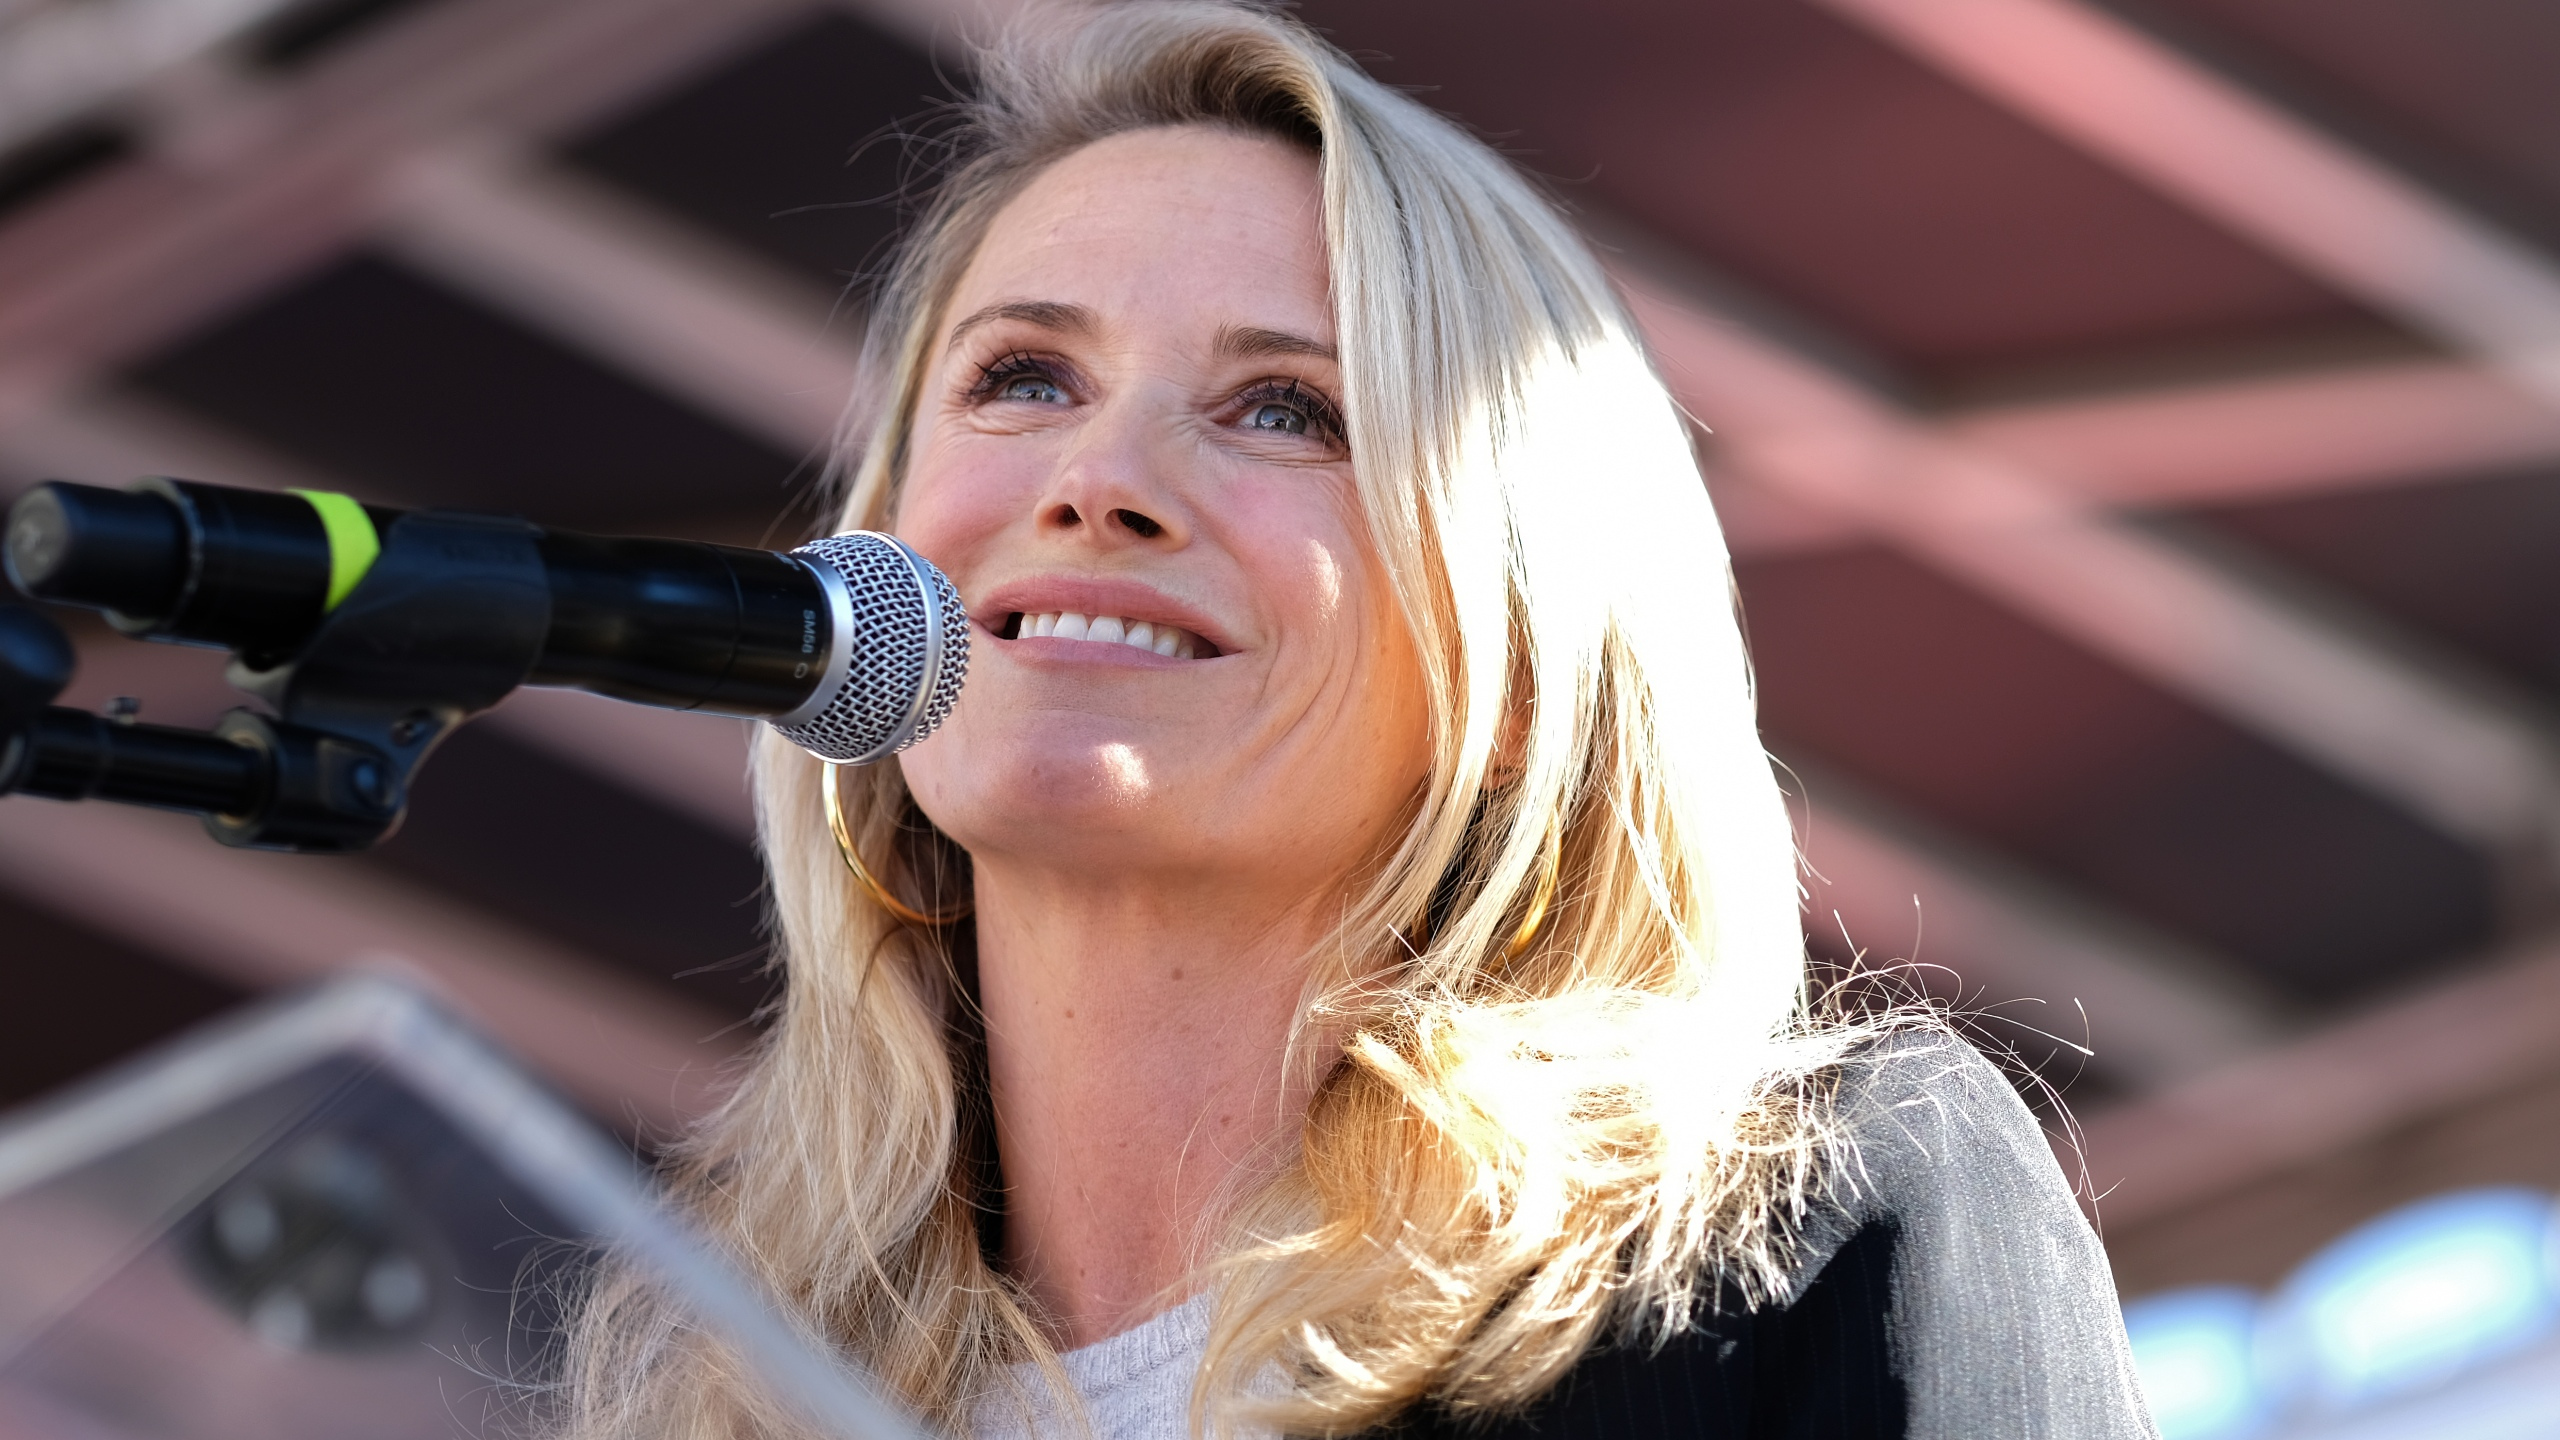 First partner of California Jennifer Siebel Newsom speaks at the Women's March in Los Angeles on Jan. 19, 2019. (Credit: Sarah Morris / Getty Images)